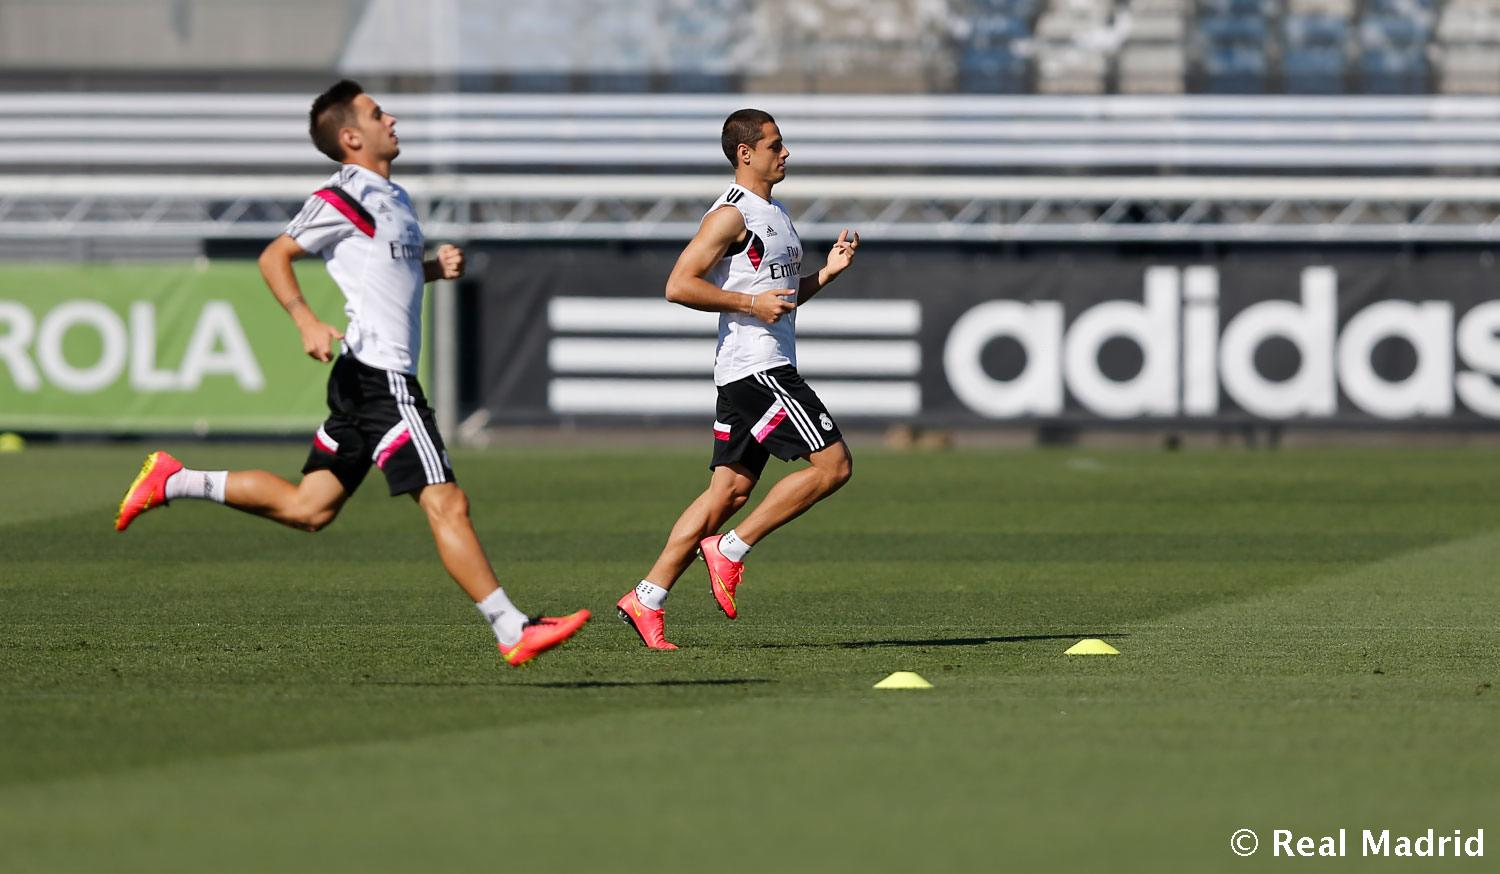 Real Madrid - Entrenamiento del Real Madrid - 04-09-2014